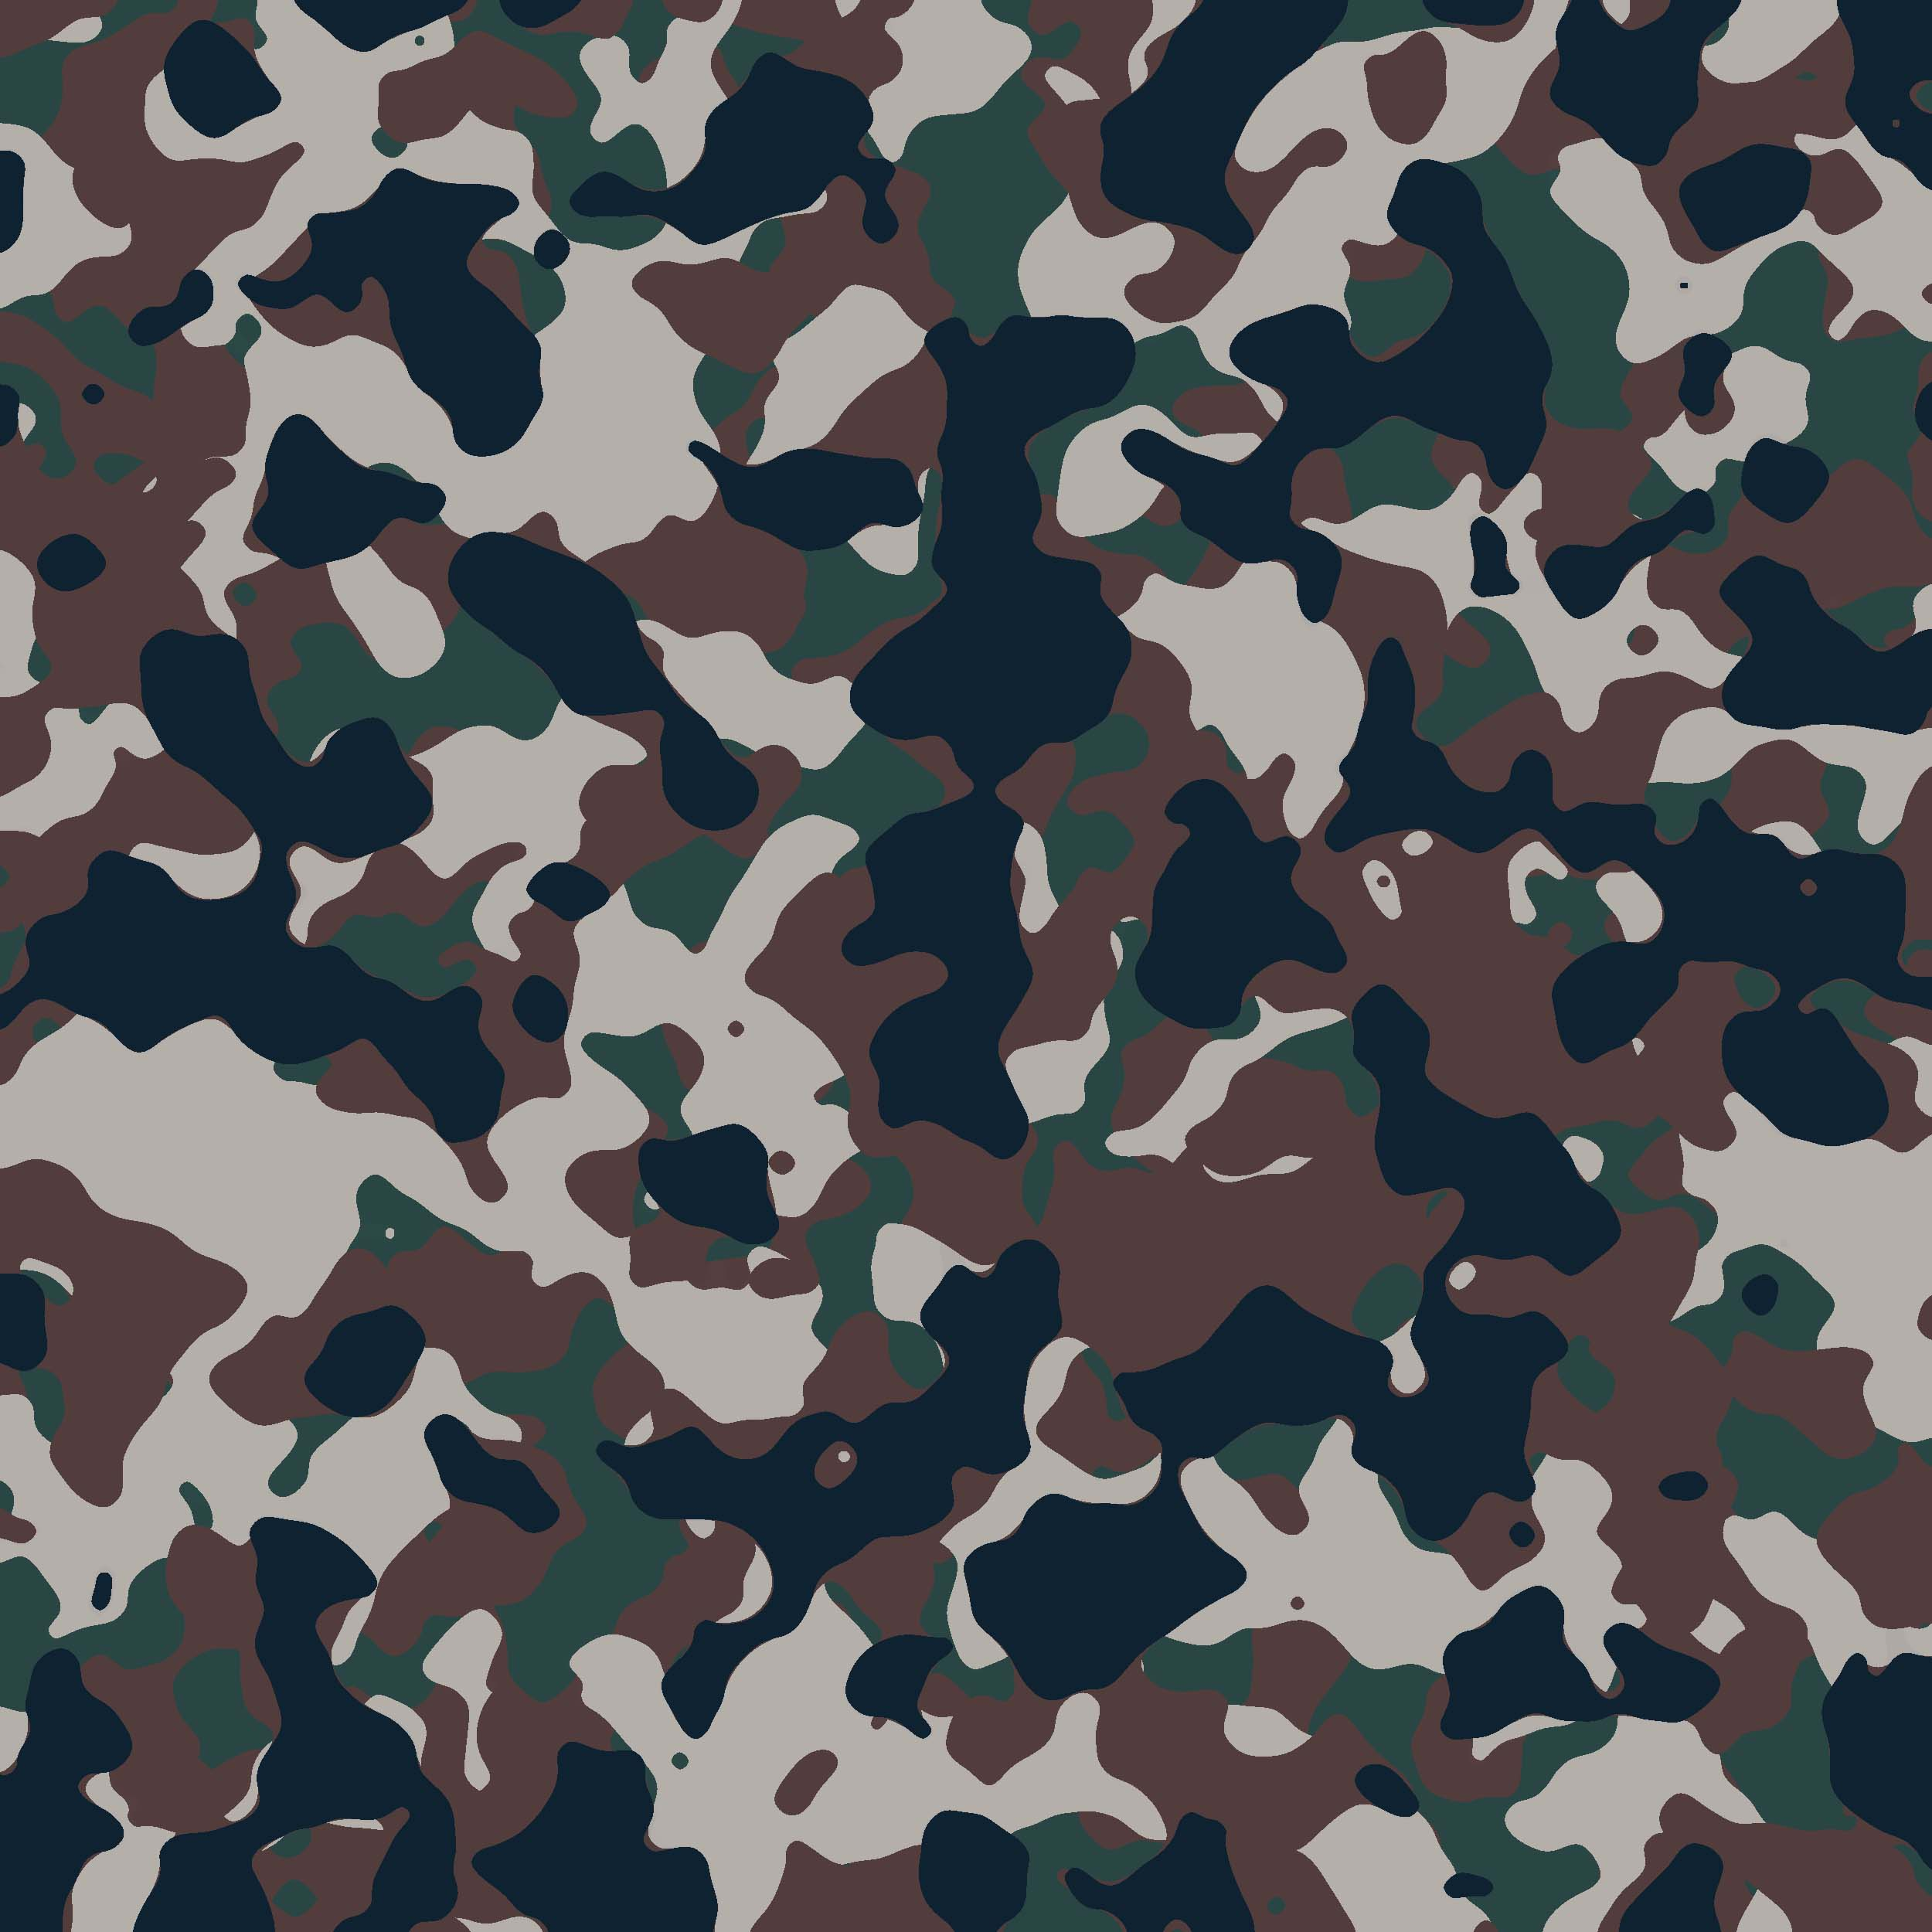 Camouflage Texture Generator - 12 PS Actions Vol 2